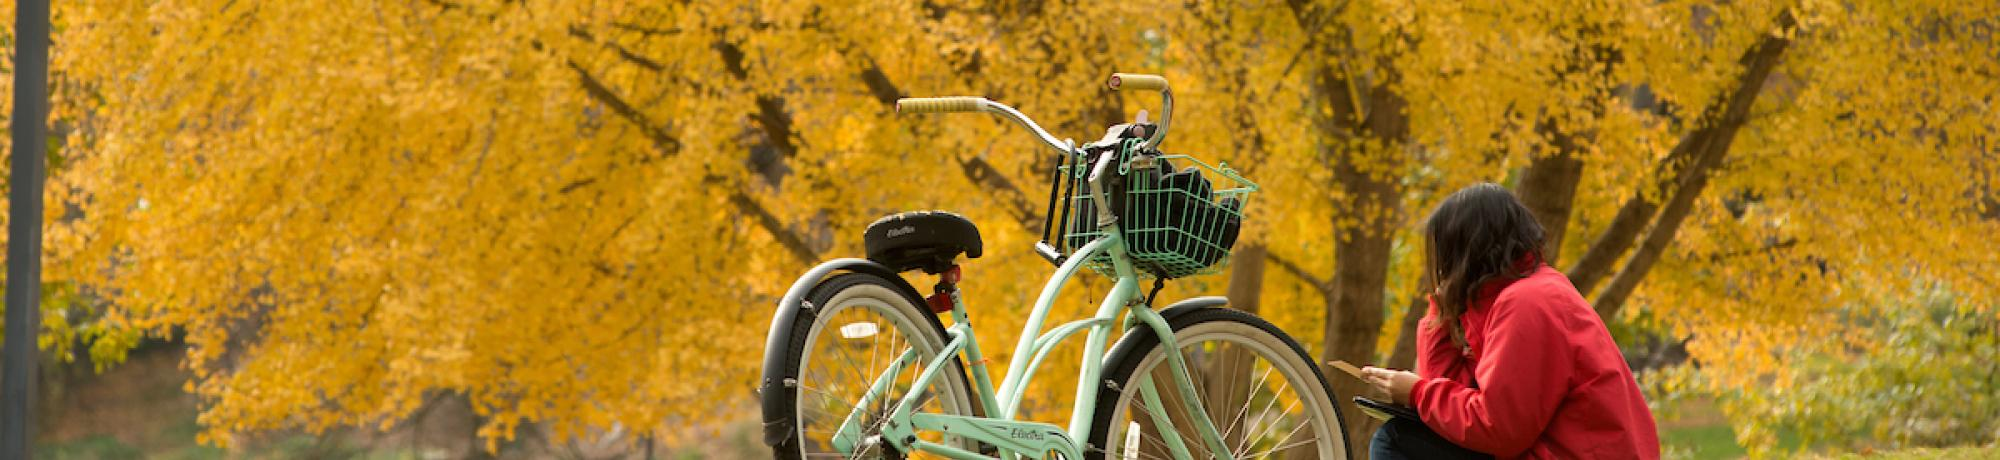 Bike with fall foliage